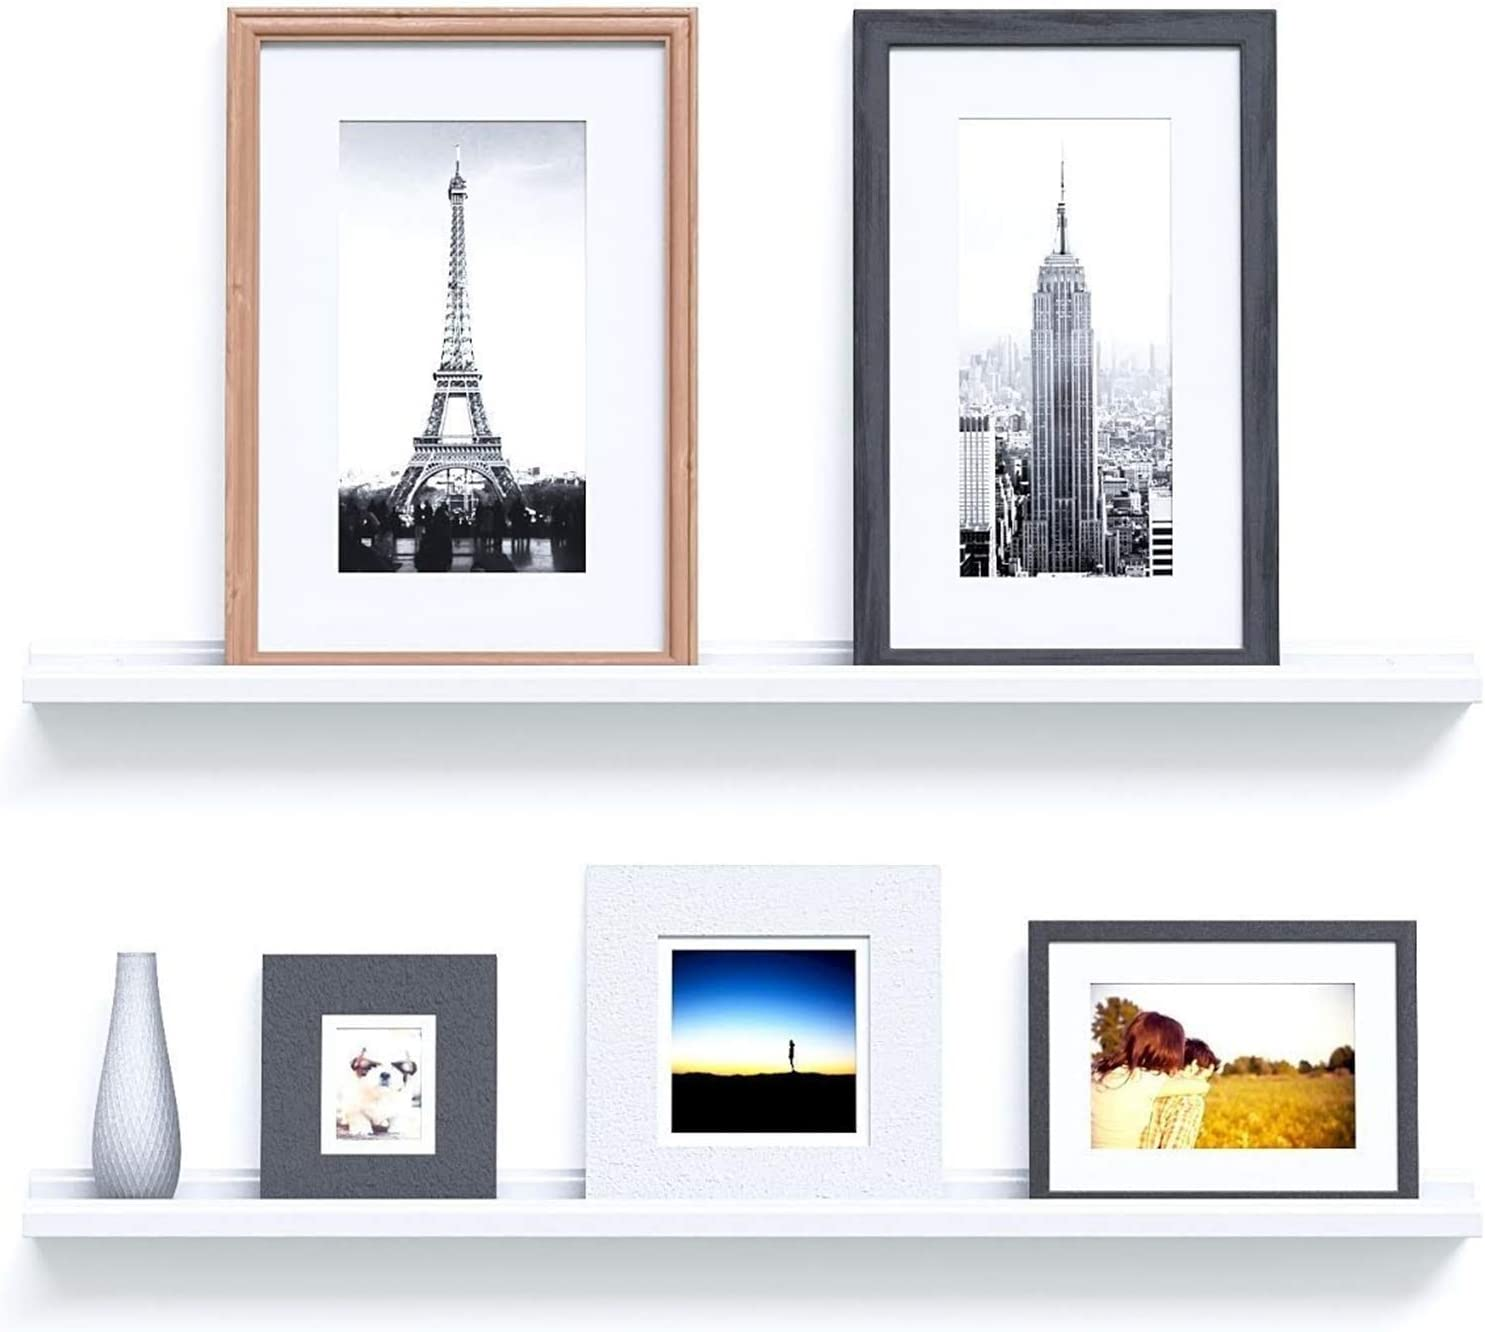 Seasonal Wrap Introduction 46 Inches Floating discount Picture Display Mount Ledge Denver Shelf Wall